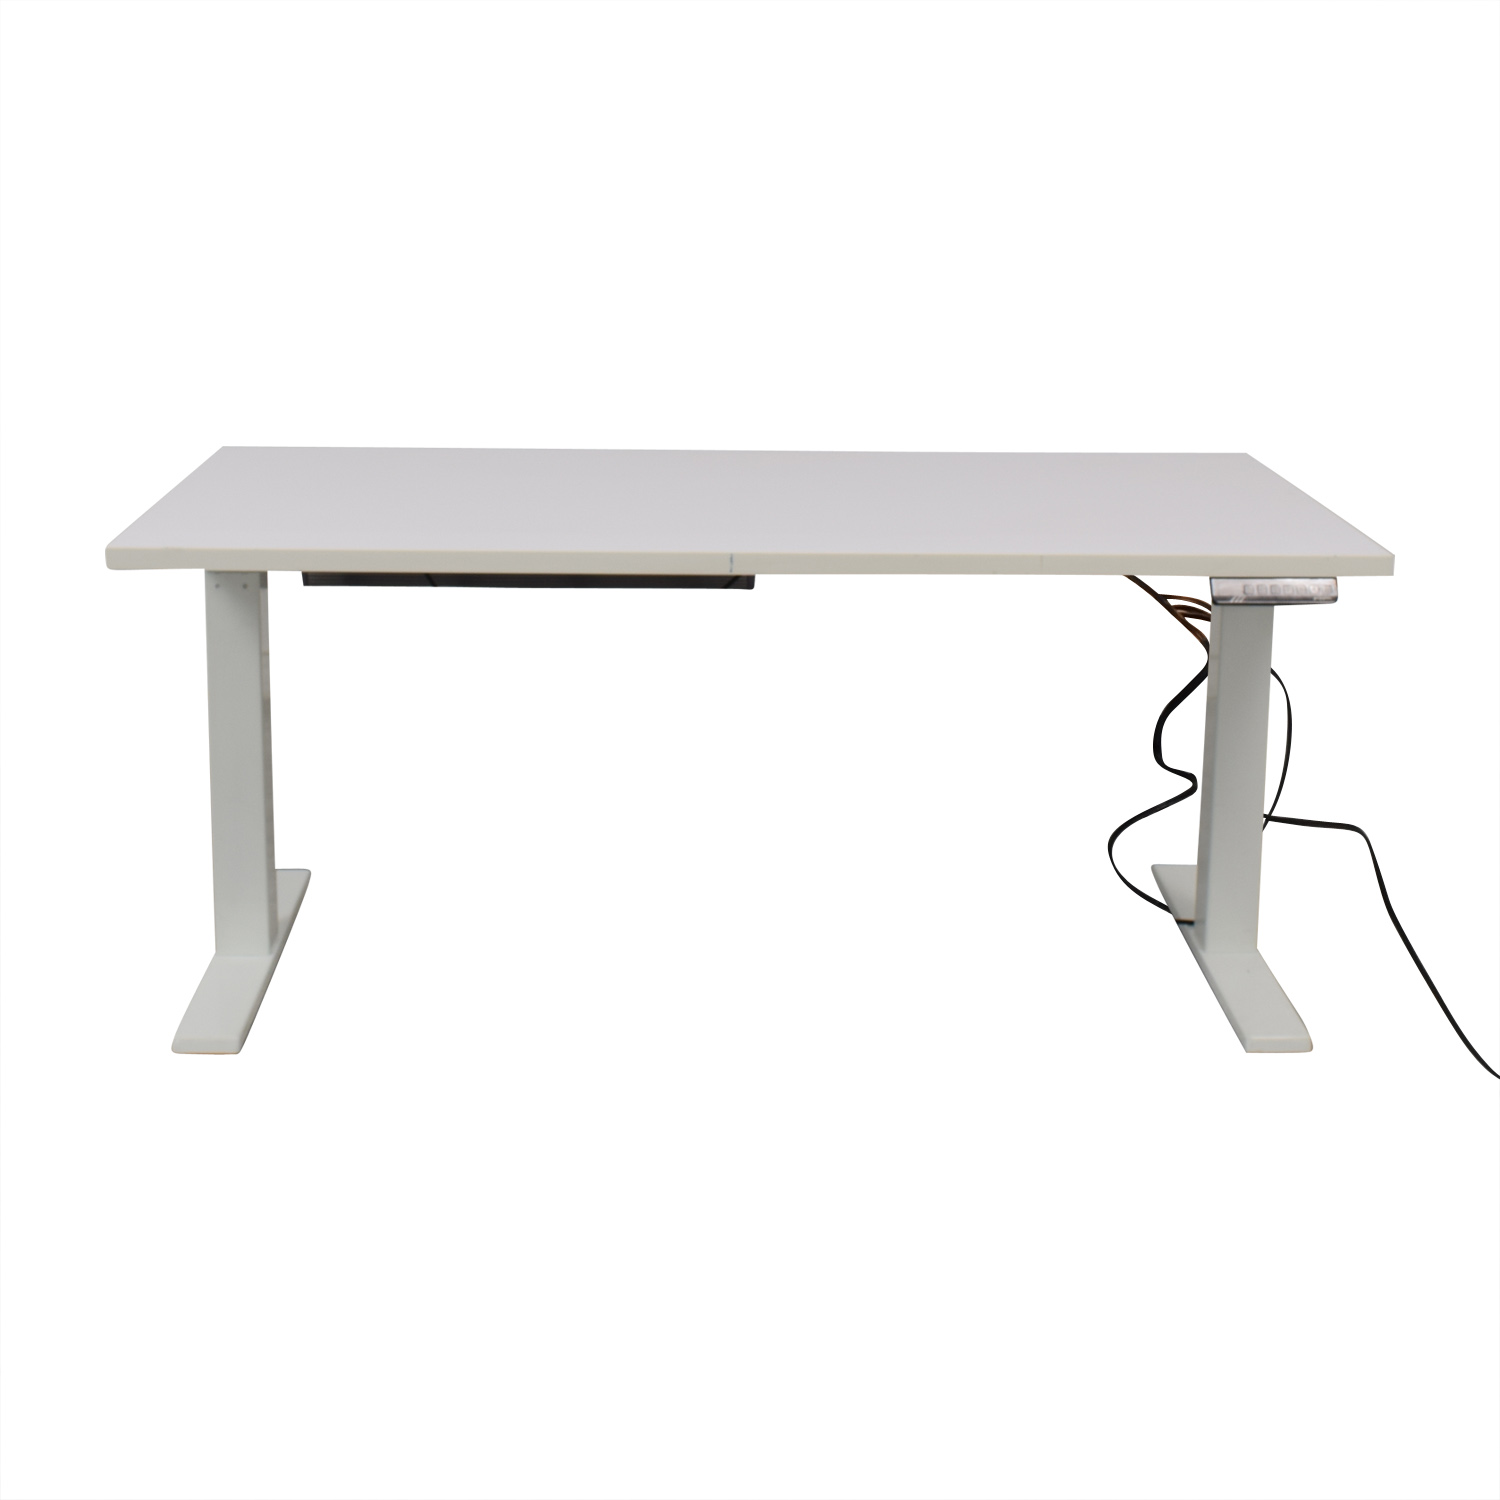 buy Poppin Poppin Series L Adjustable Height Single Desk online